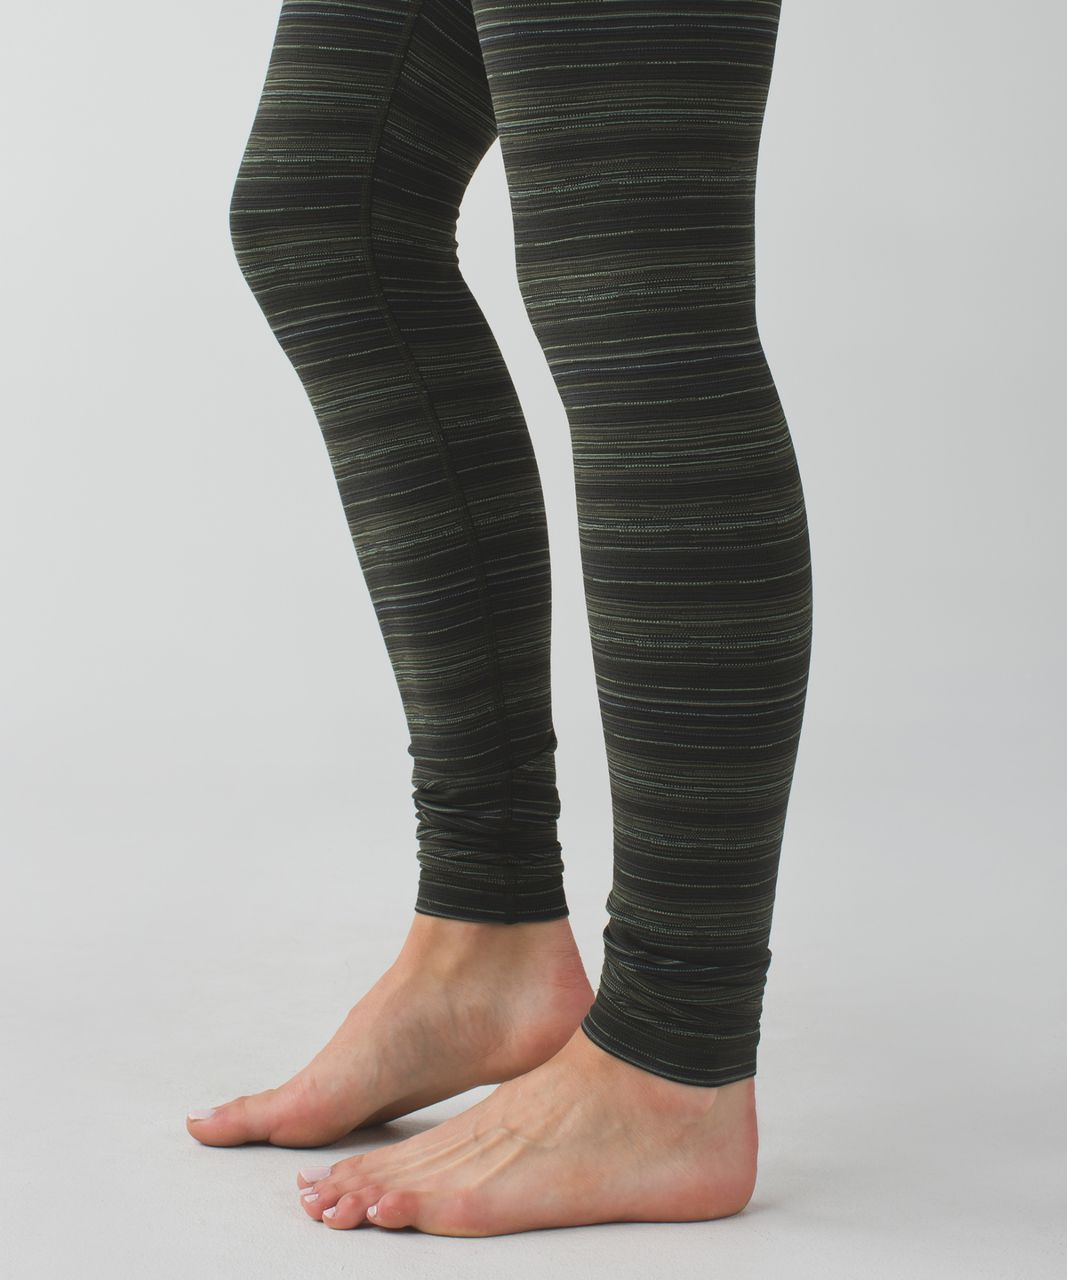 Lululemon Wunder Under Pant III - Cyber Stripe Gator Green Black